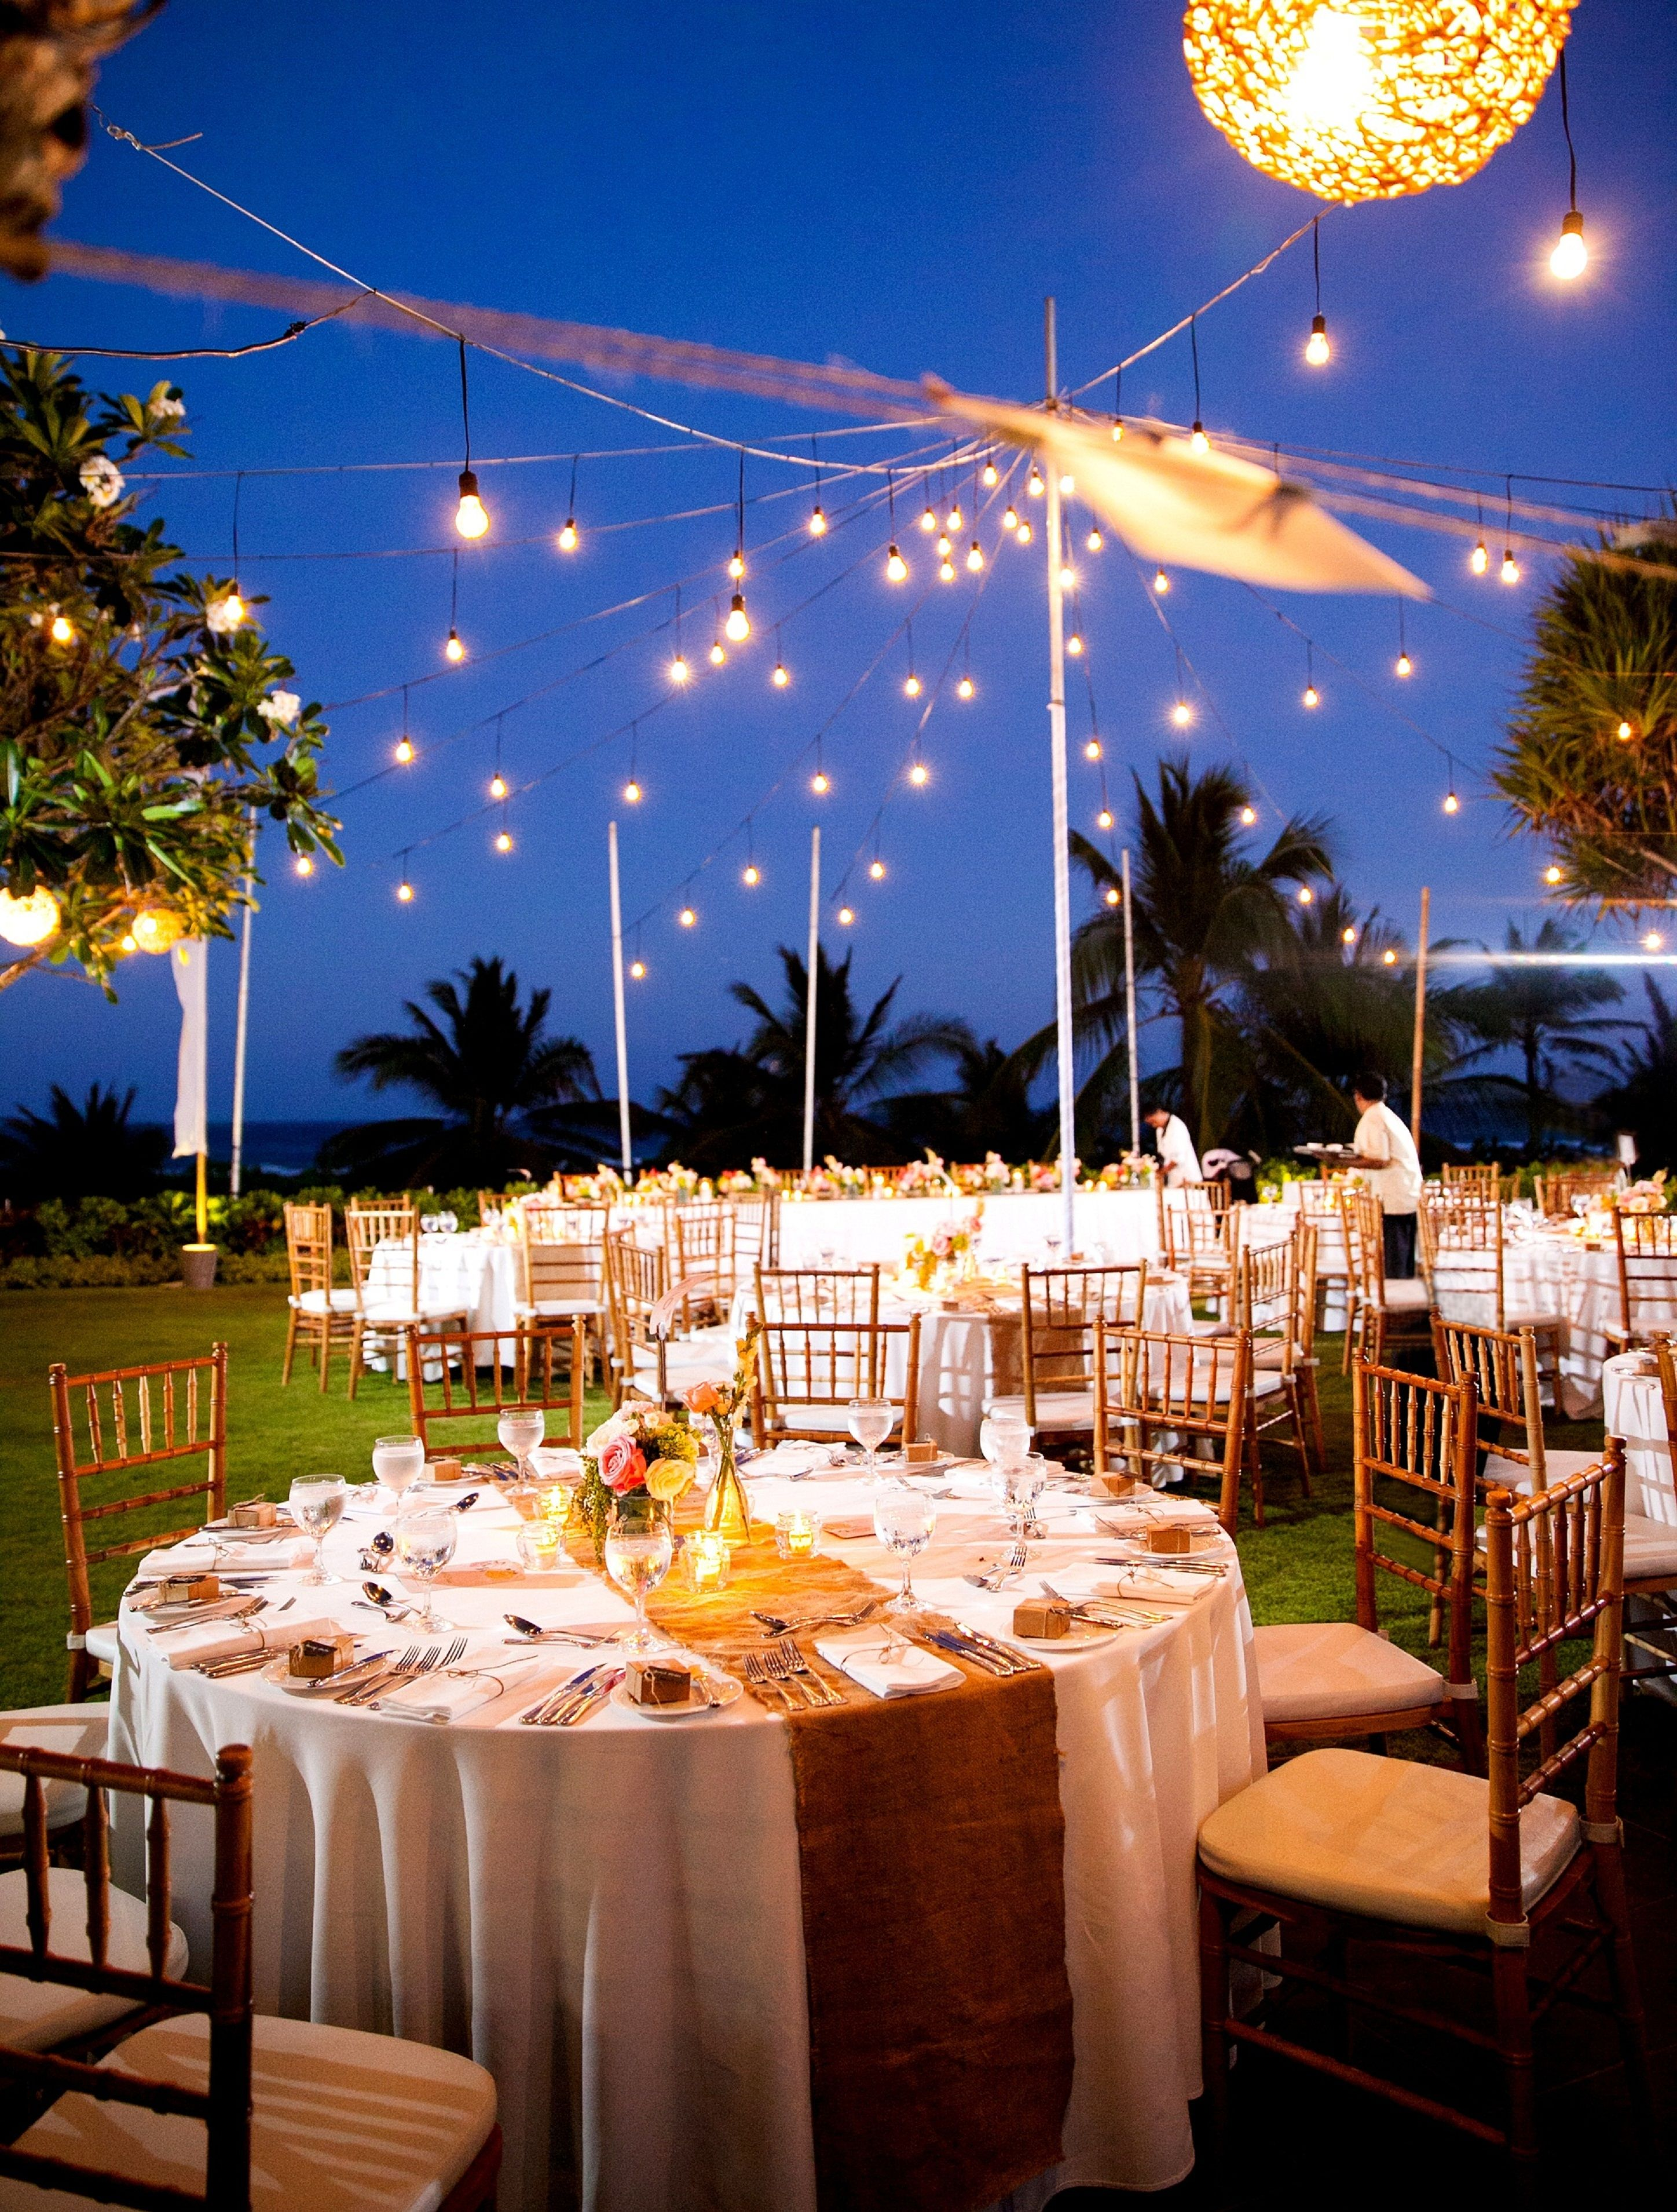 A lovely starry night outdoor wedding project by grand hyatt bali a lovely starry night outdoor wedding project by grand hyatt bali http junglespirit Choice Image